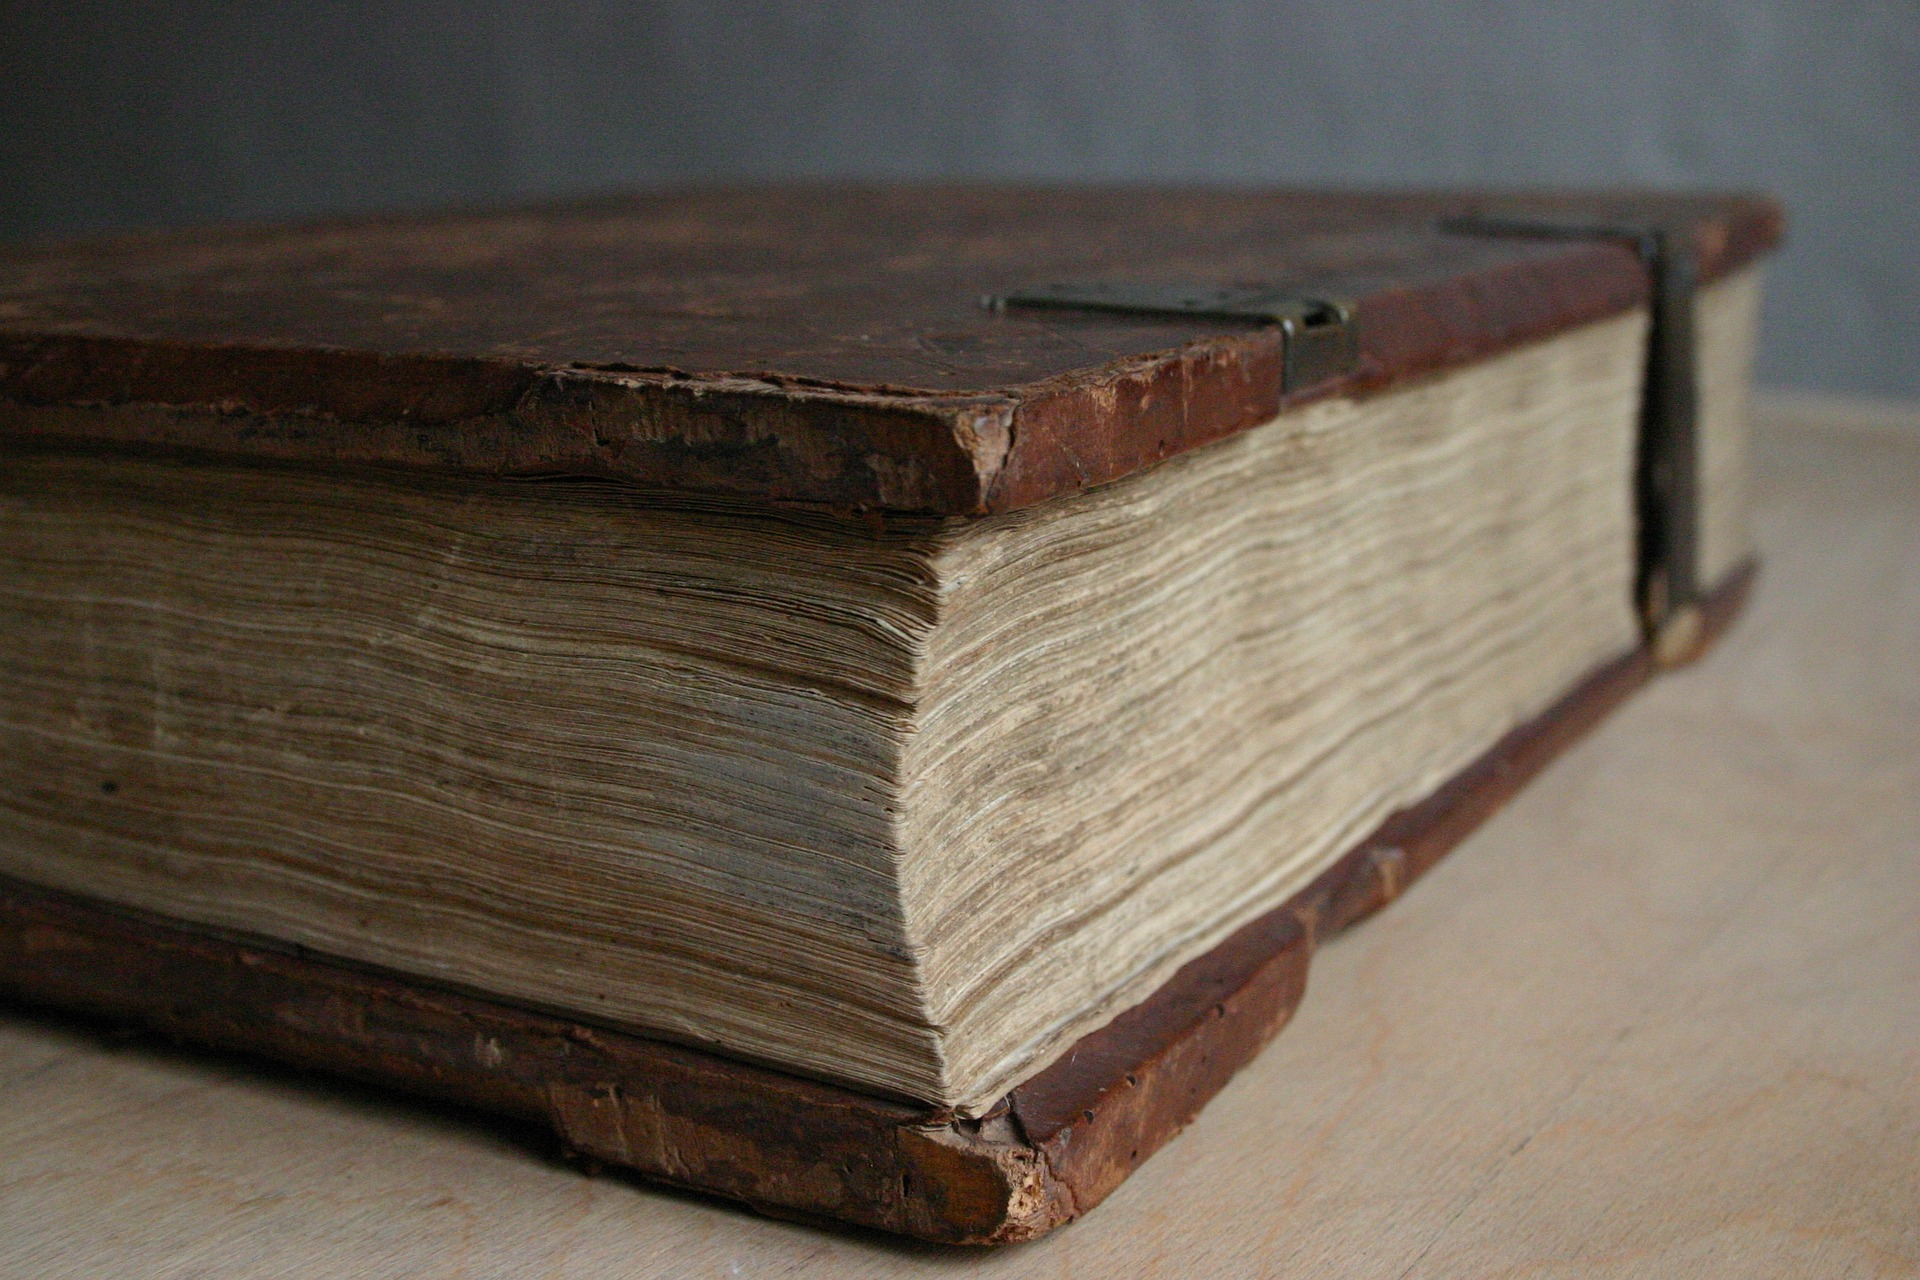 The Rarest Books in the World